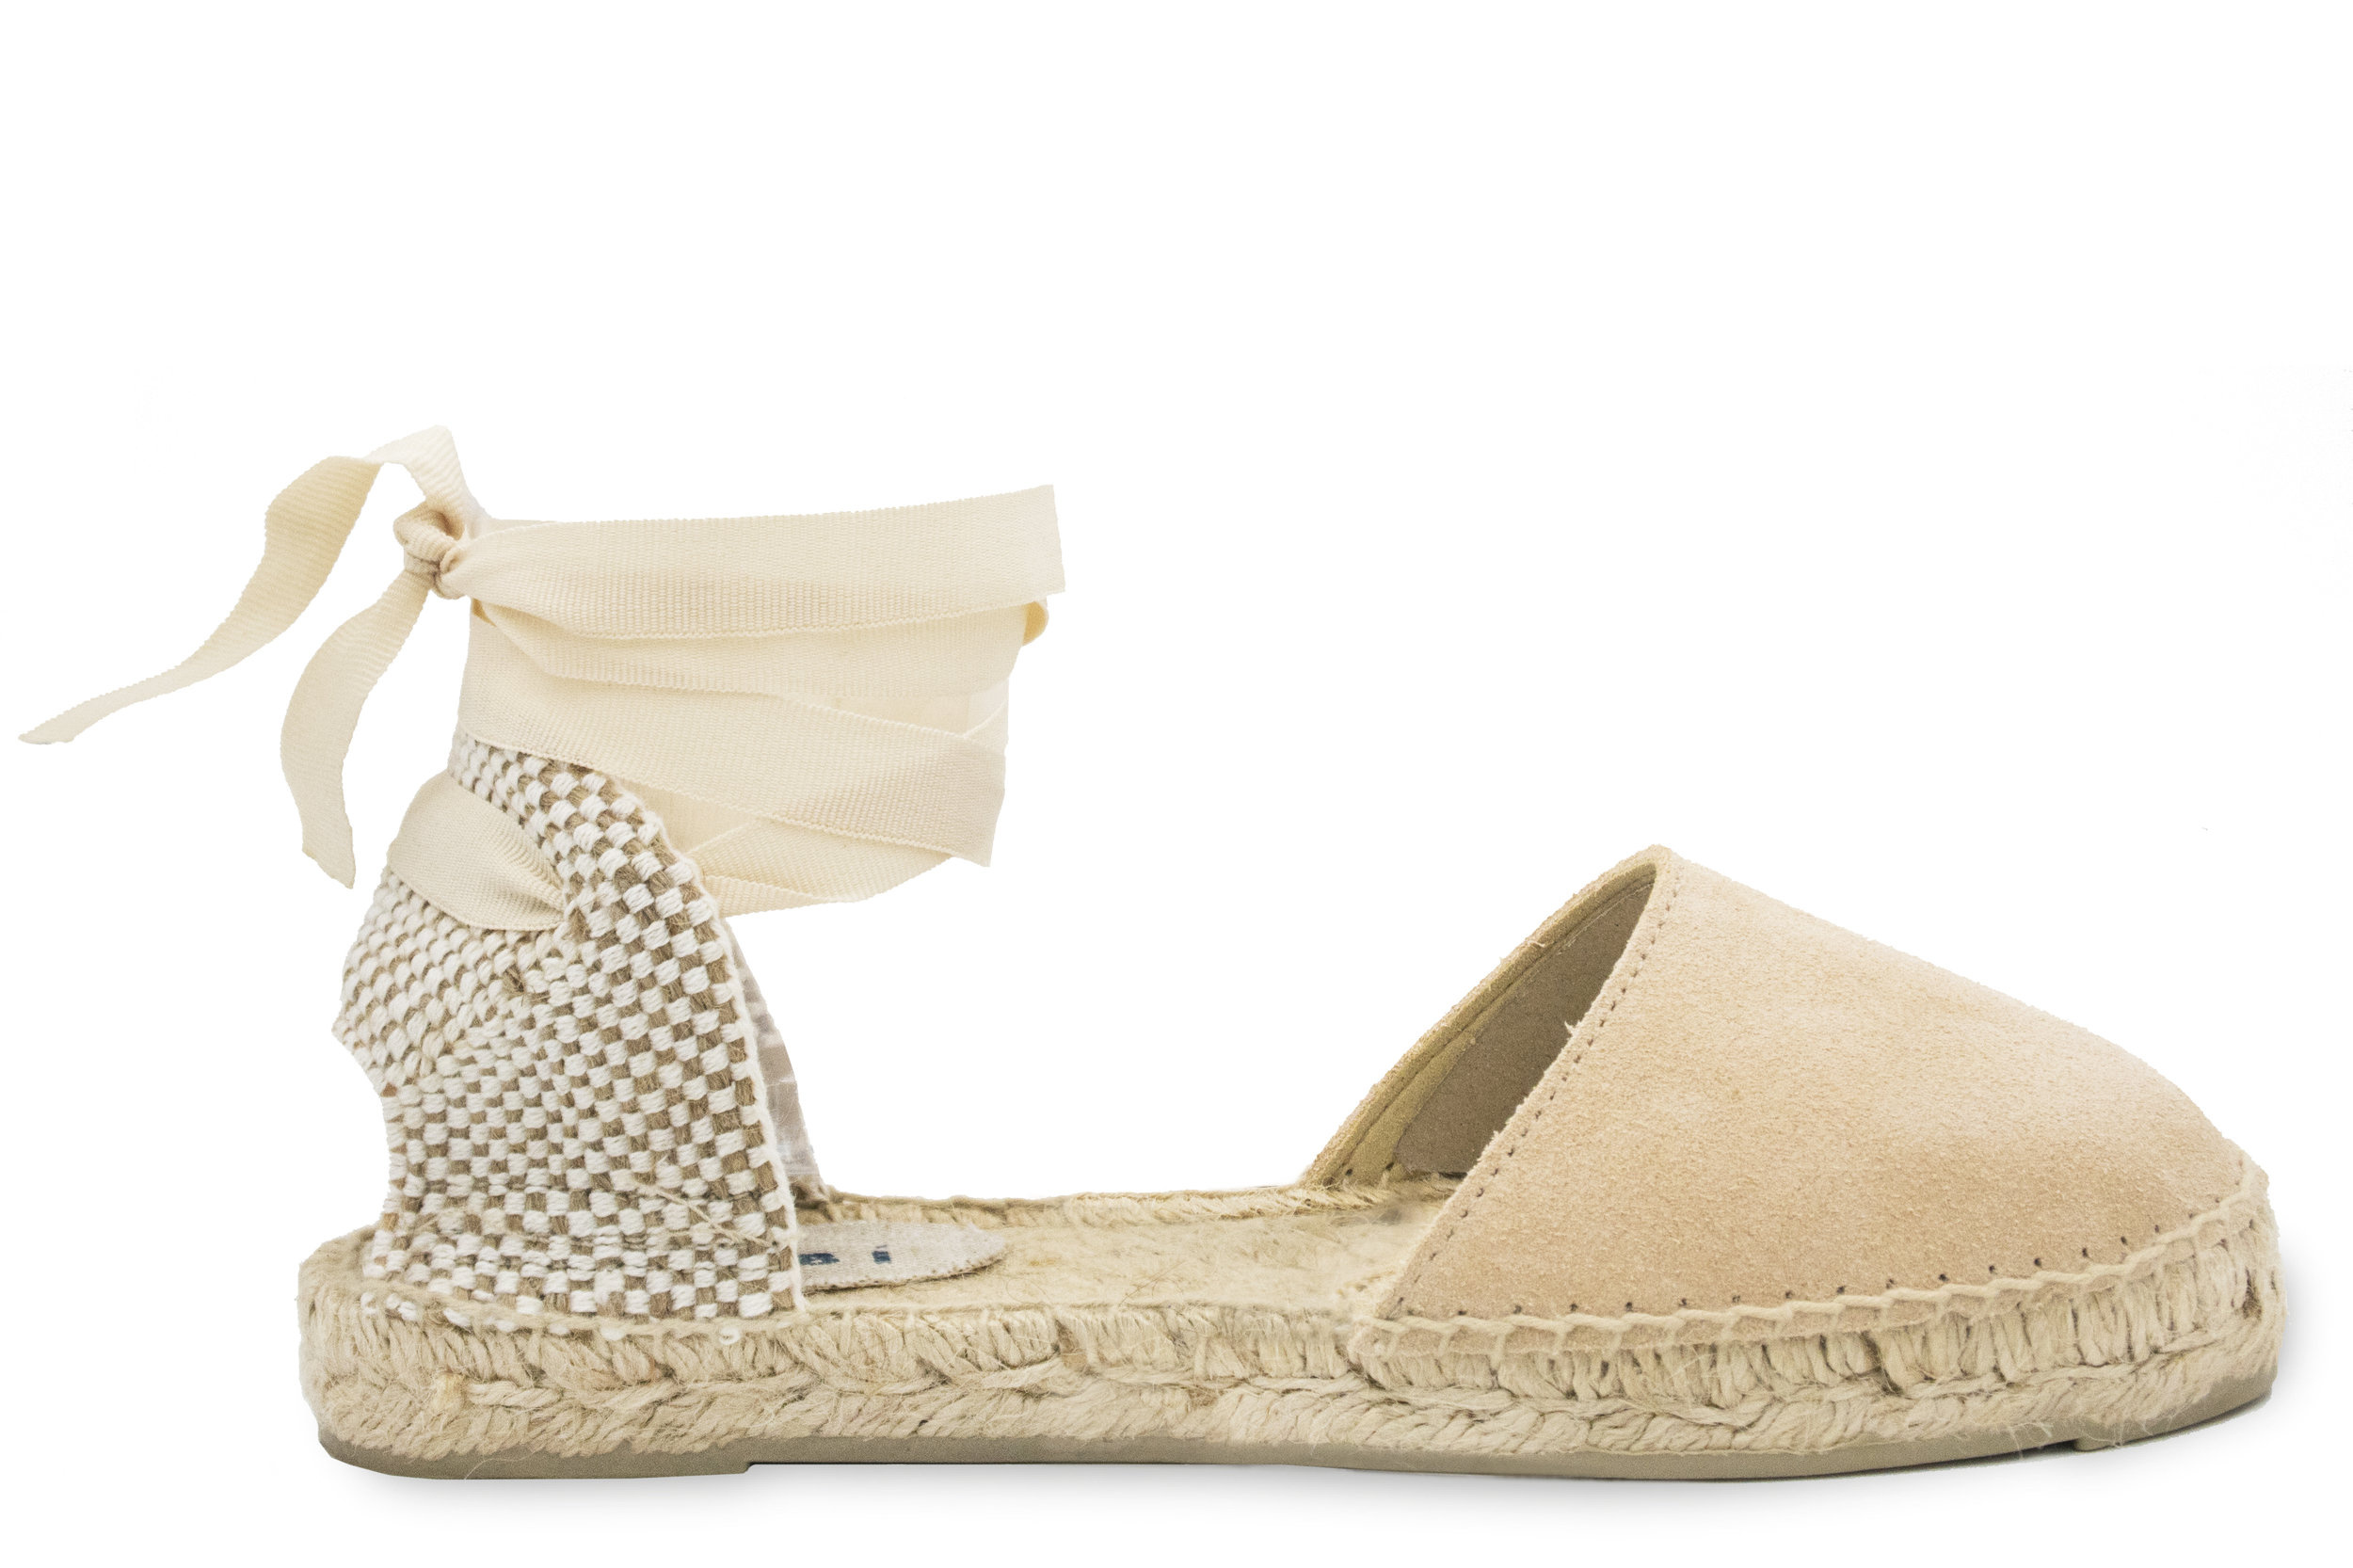 301f5fcb815 MANEBÍ - Espadrilles Handmade in Spain - Official Website - FLAT SANDAL -  Hamptons - Champagne Beige